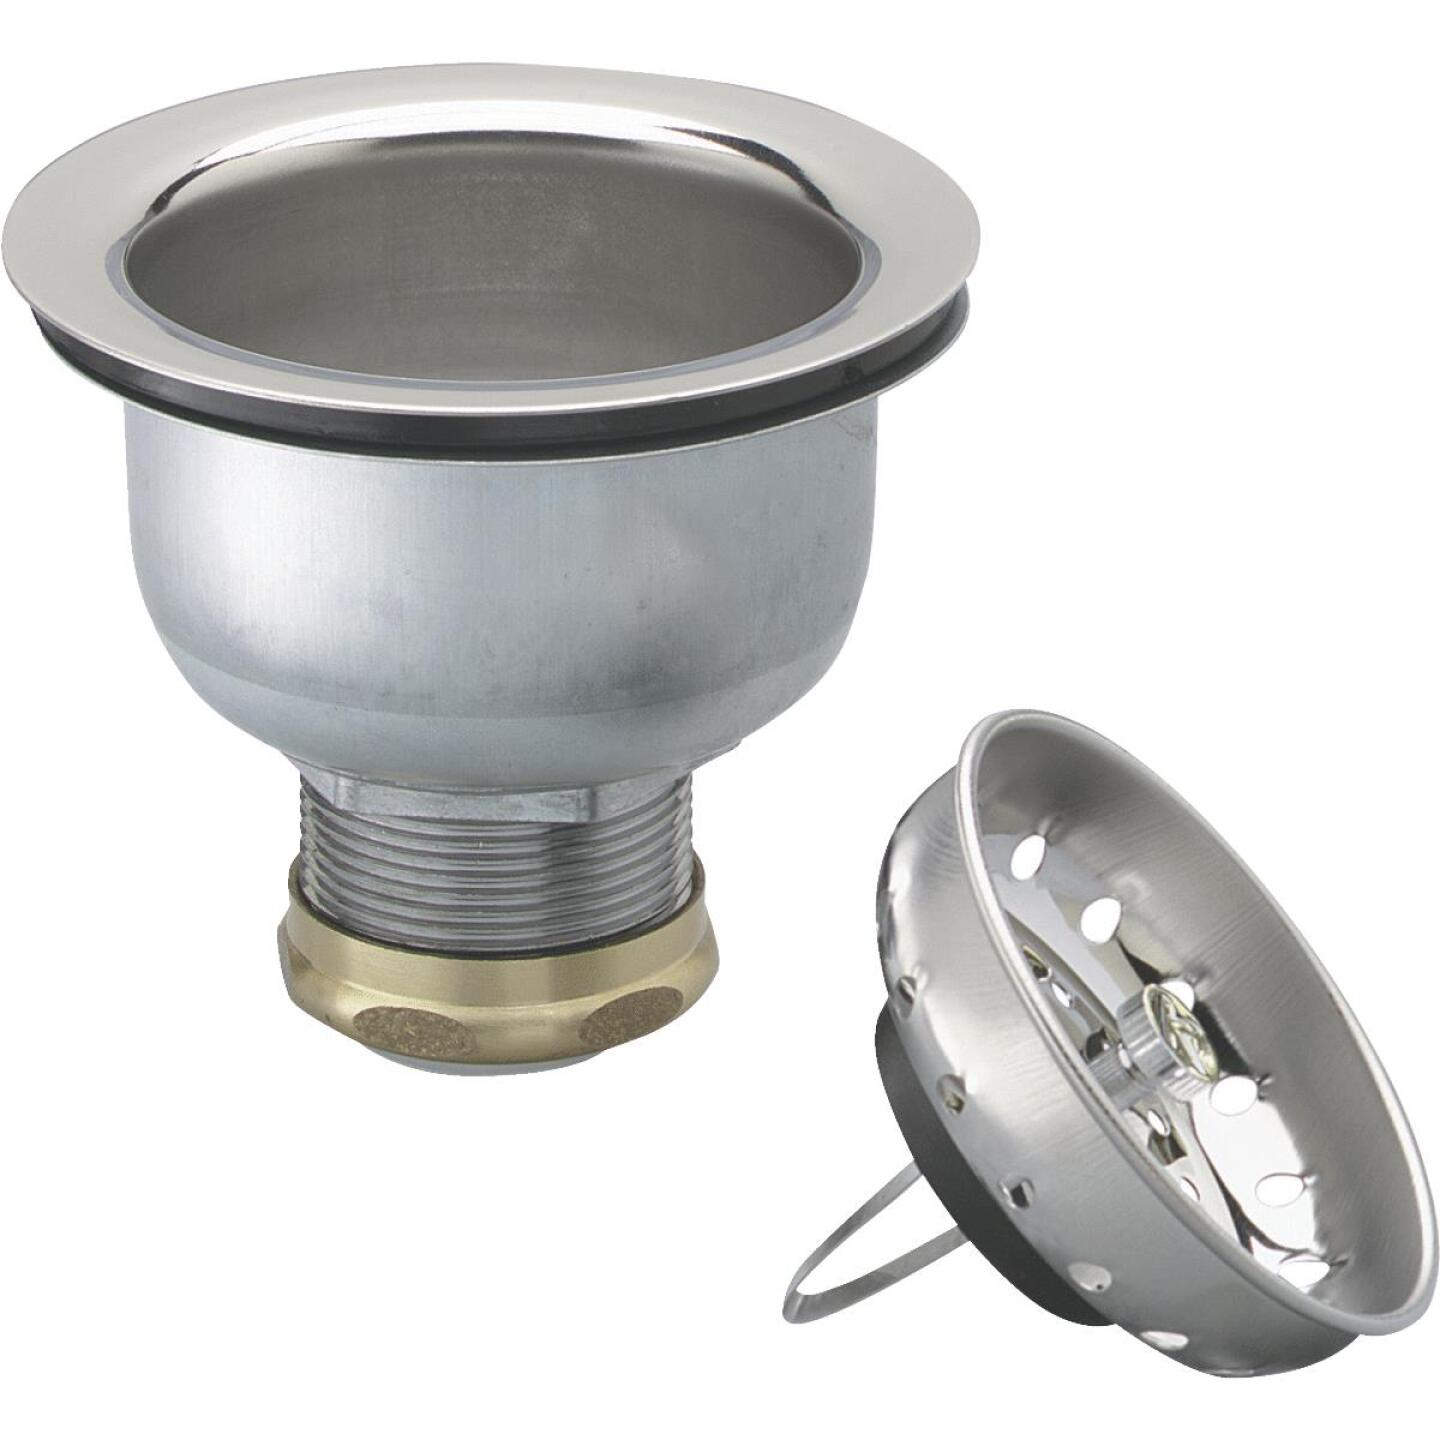 Keeney 3-1/2 In. to 4 In. Stainless Steel Clip Closure Basket Strainer Assembly Image 1